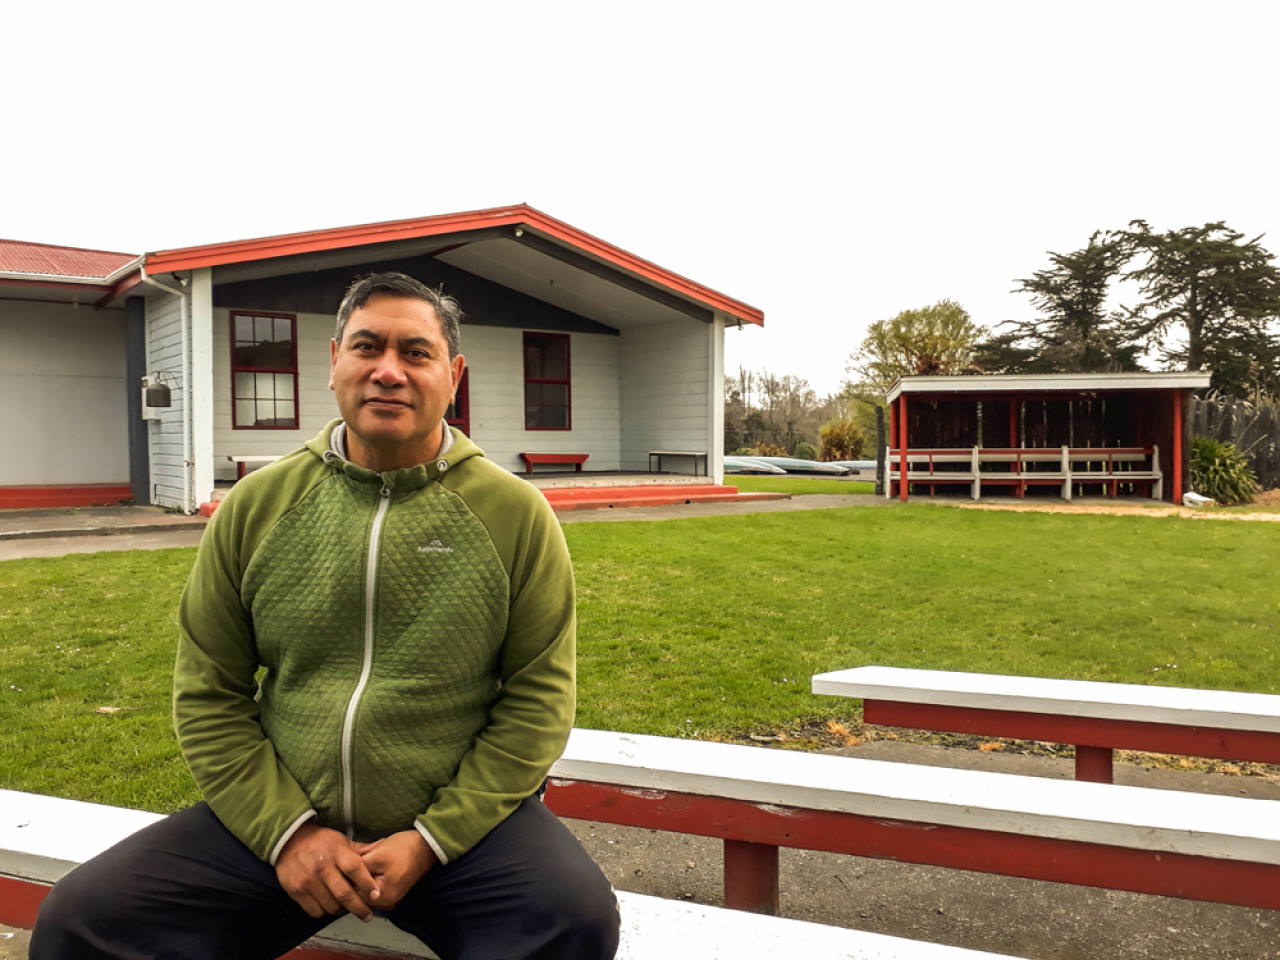 Geoffrey Hipango at Te Ao Hou Marae in Whanganui. If you book a guided kayak tour with his nephew Ash, you will be treated to an overnight stay in the Marae which is a very unique experience and only possible by special invitation from a member of the resident iwi (tribe).